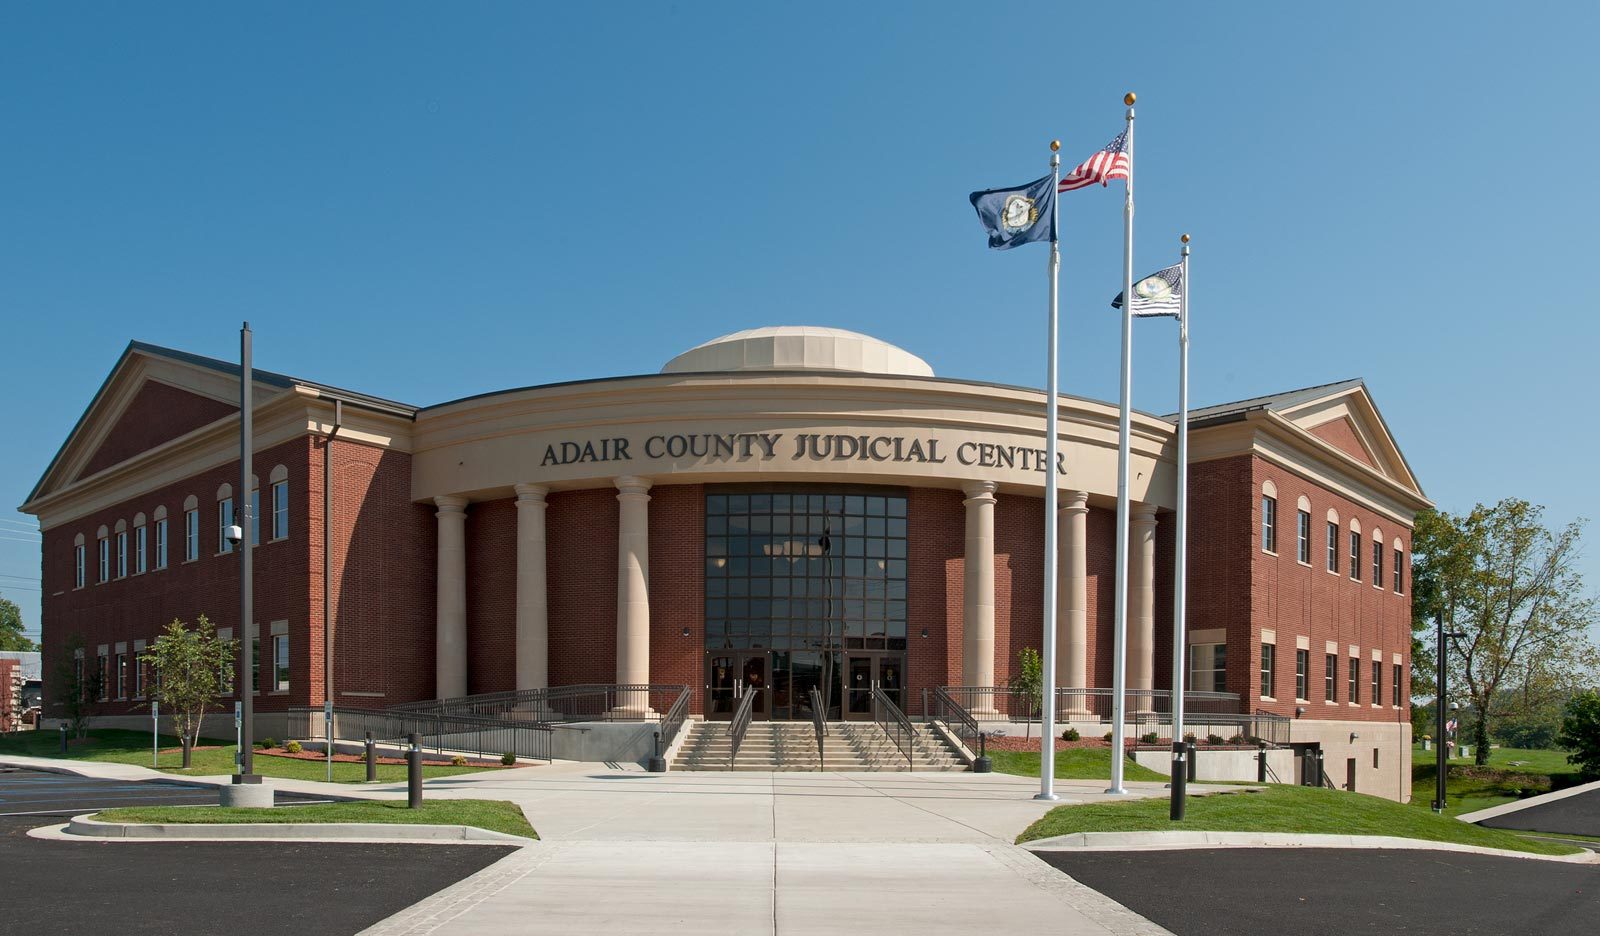 Adair County Judicial Center